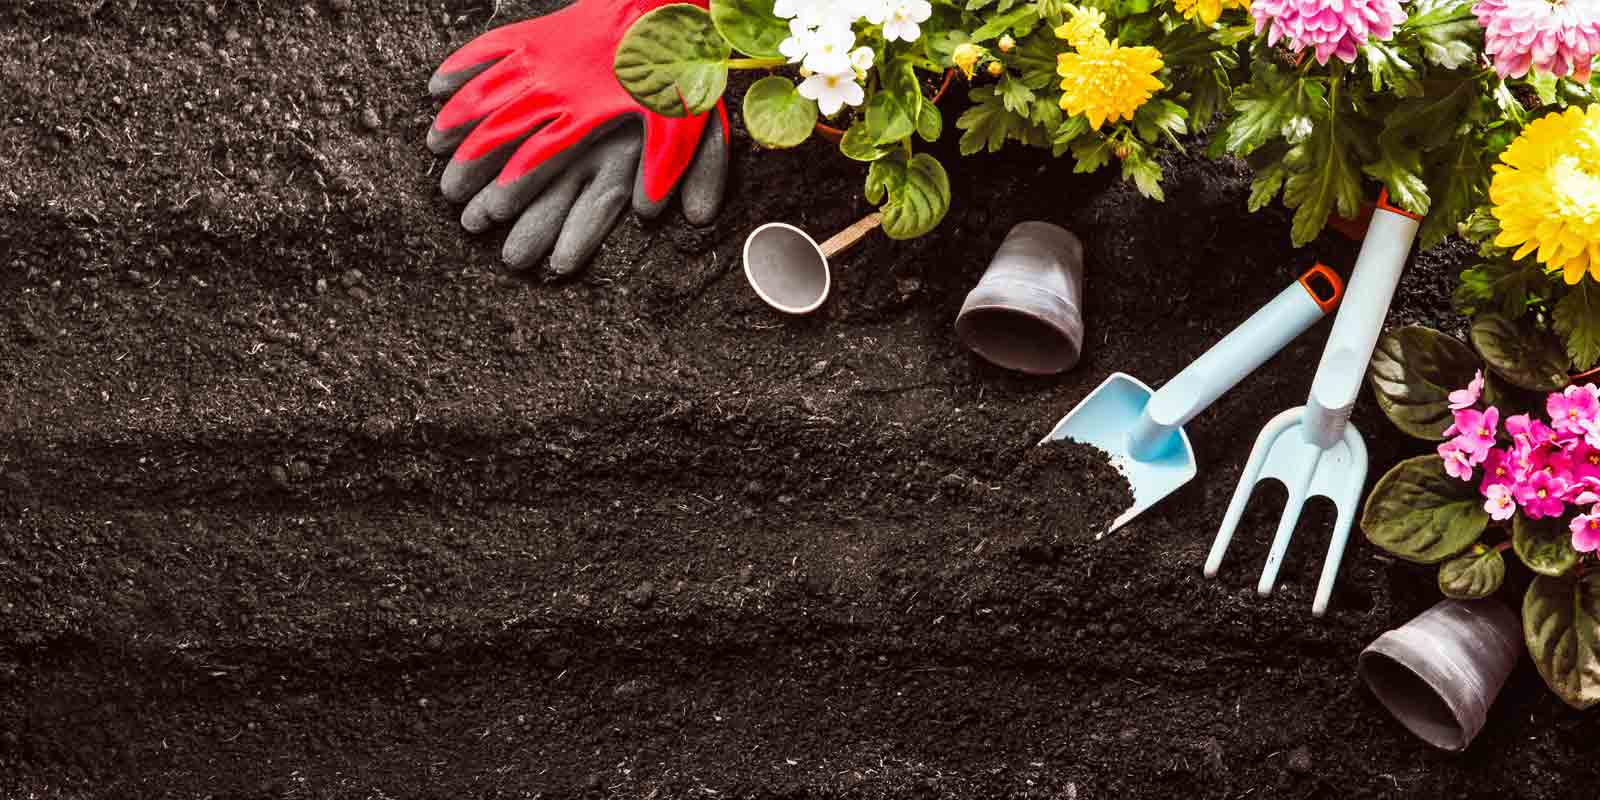 Gardening with mulch and compost.